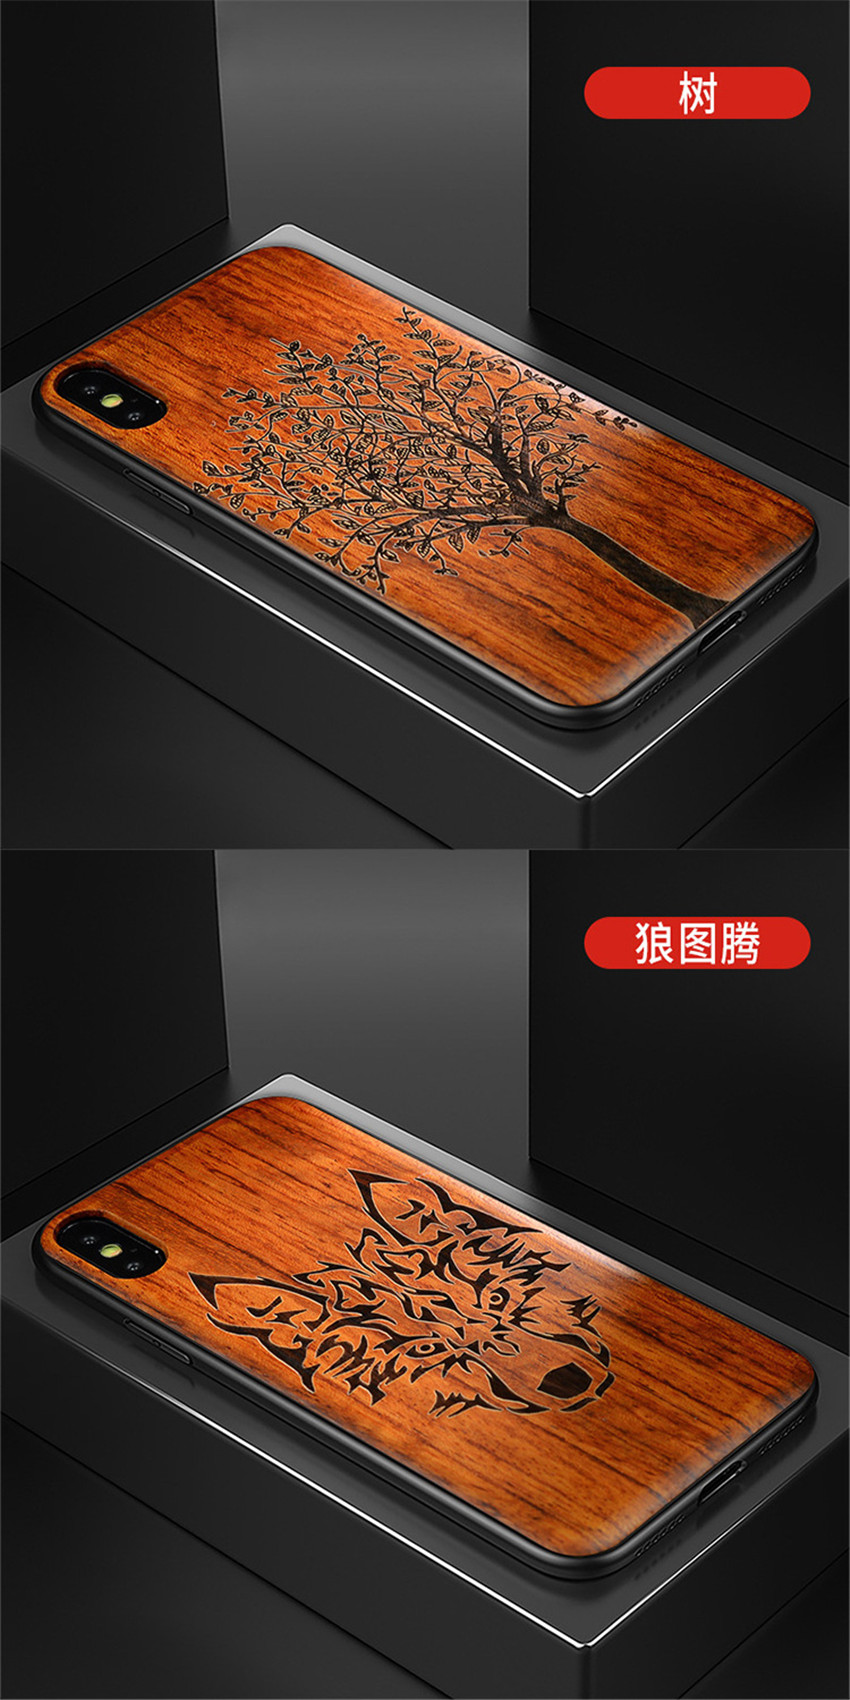 2018 New For iPhone XS Max Case Slim Wood Back Cover TPU Bumper Case For iPhone X iPhone XS Phone Cases (12)